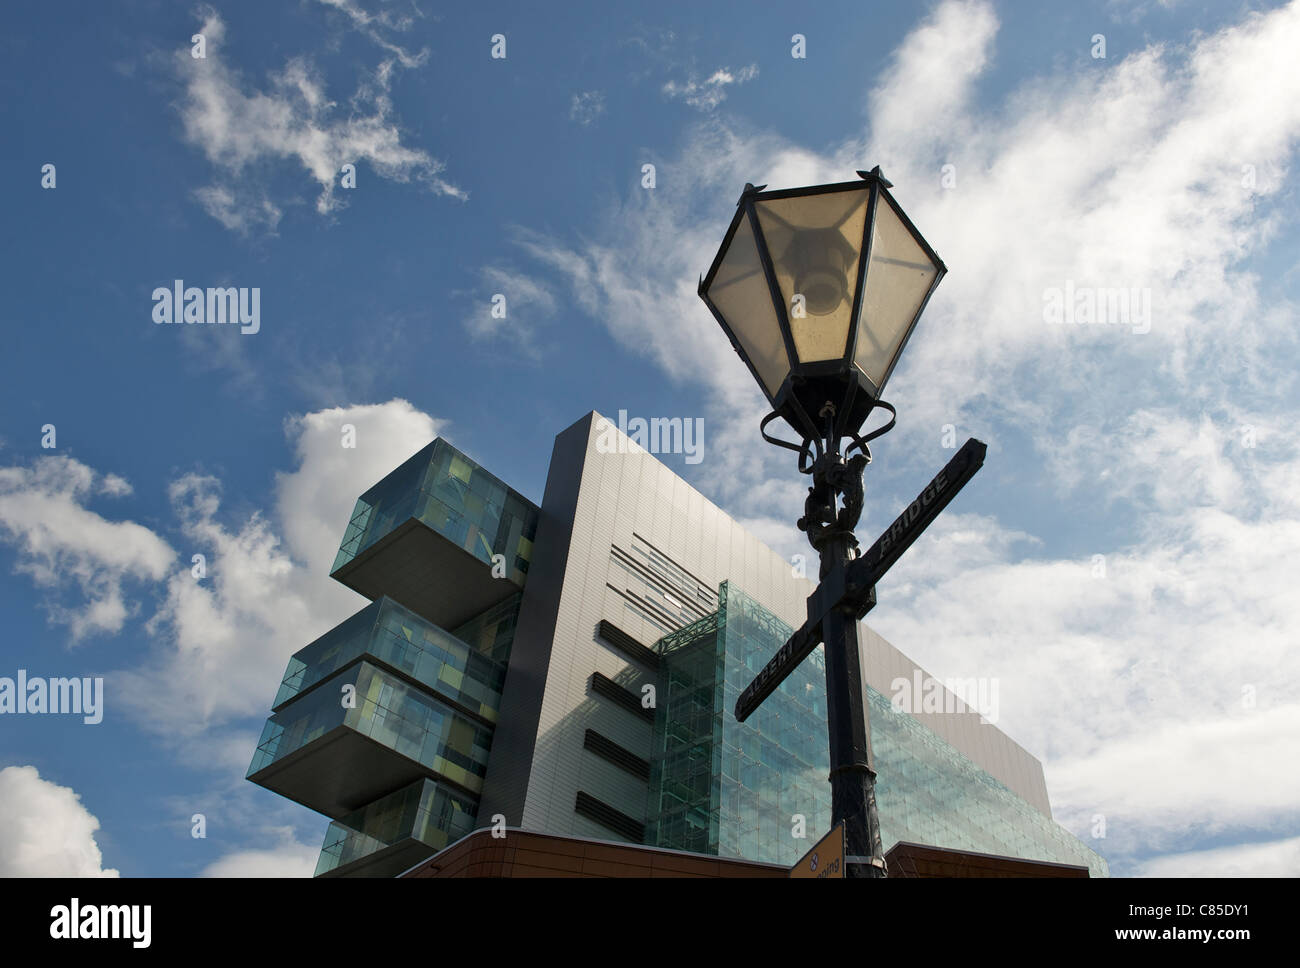 Manchester Civil Justice Centre - Law Courts - Stock Image